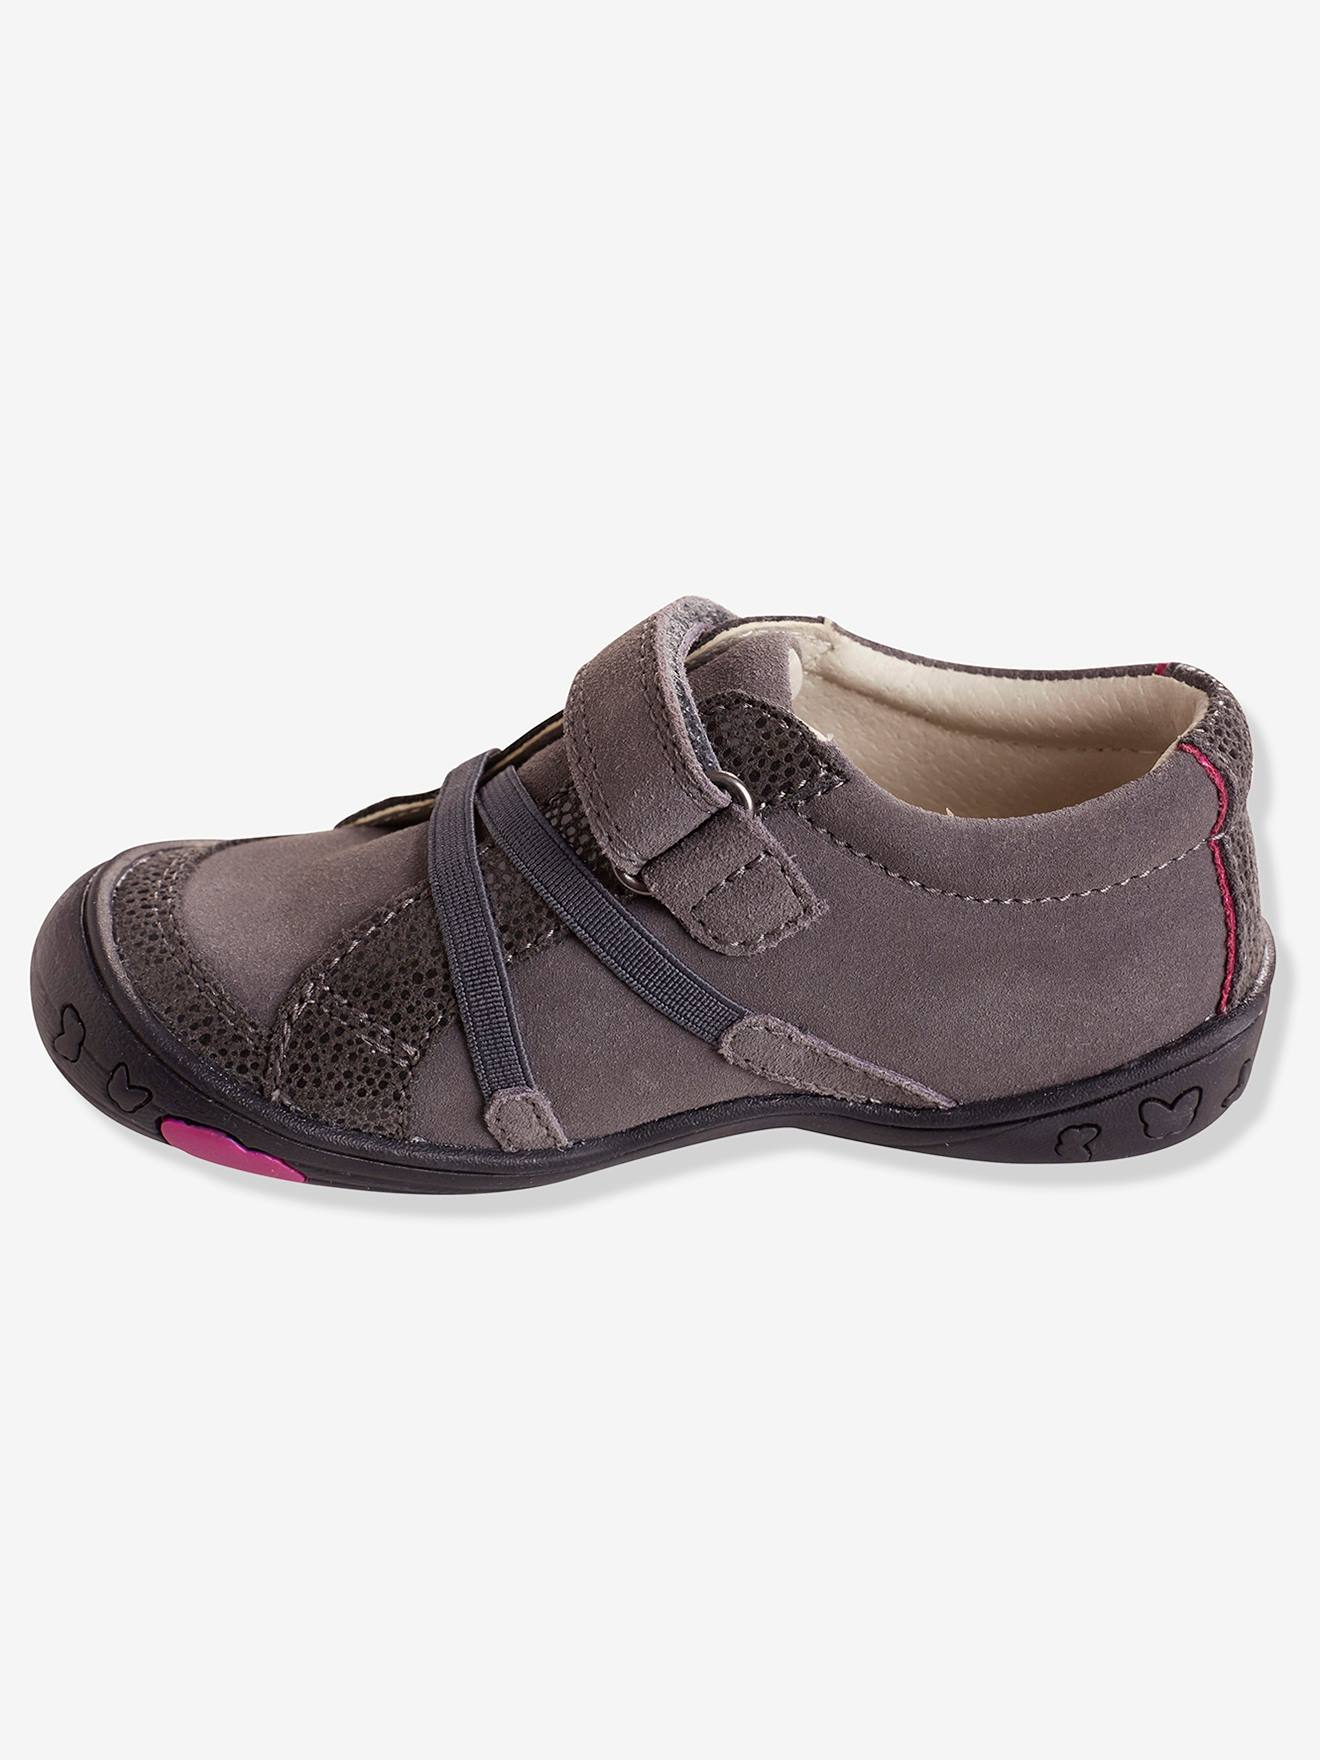 Maternelle Chaussures Collection Gris Vertbaudet Cuir Basses Fille QrdWCoxBe